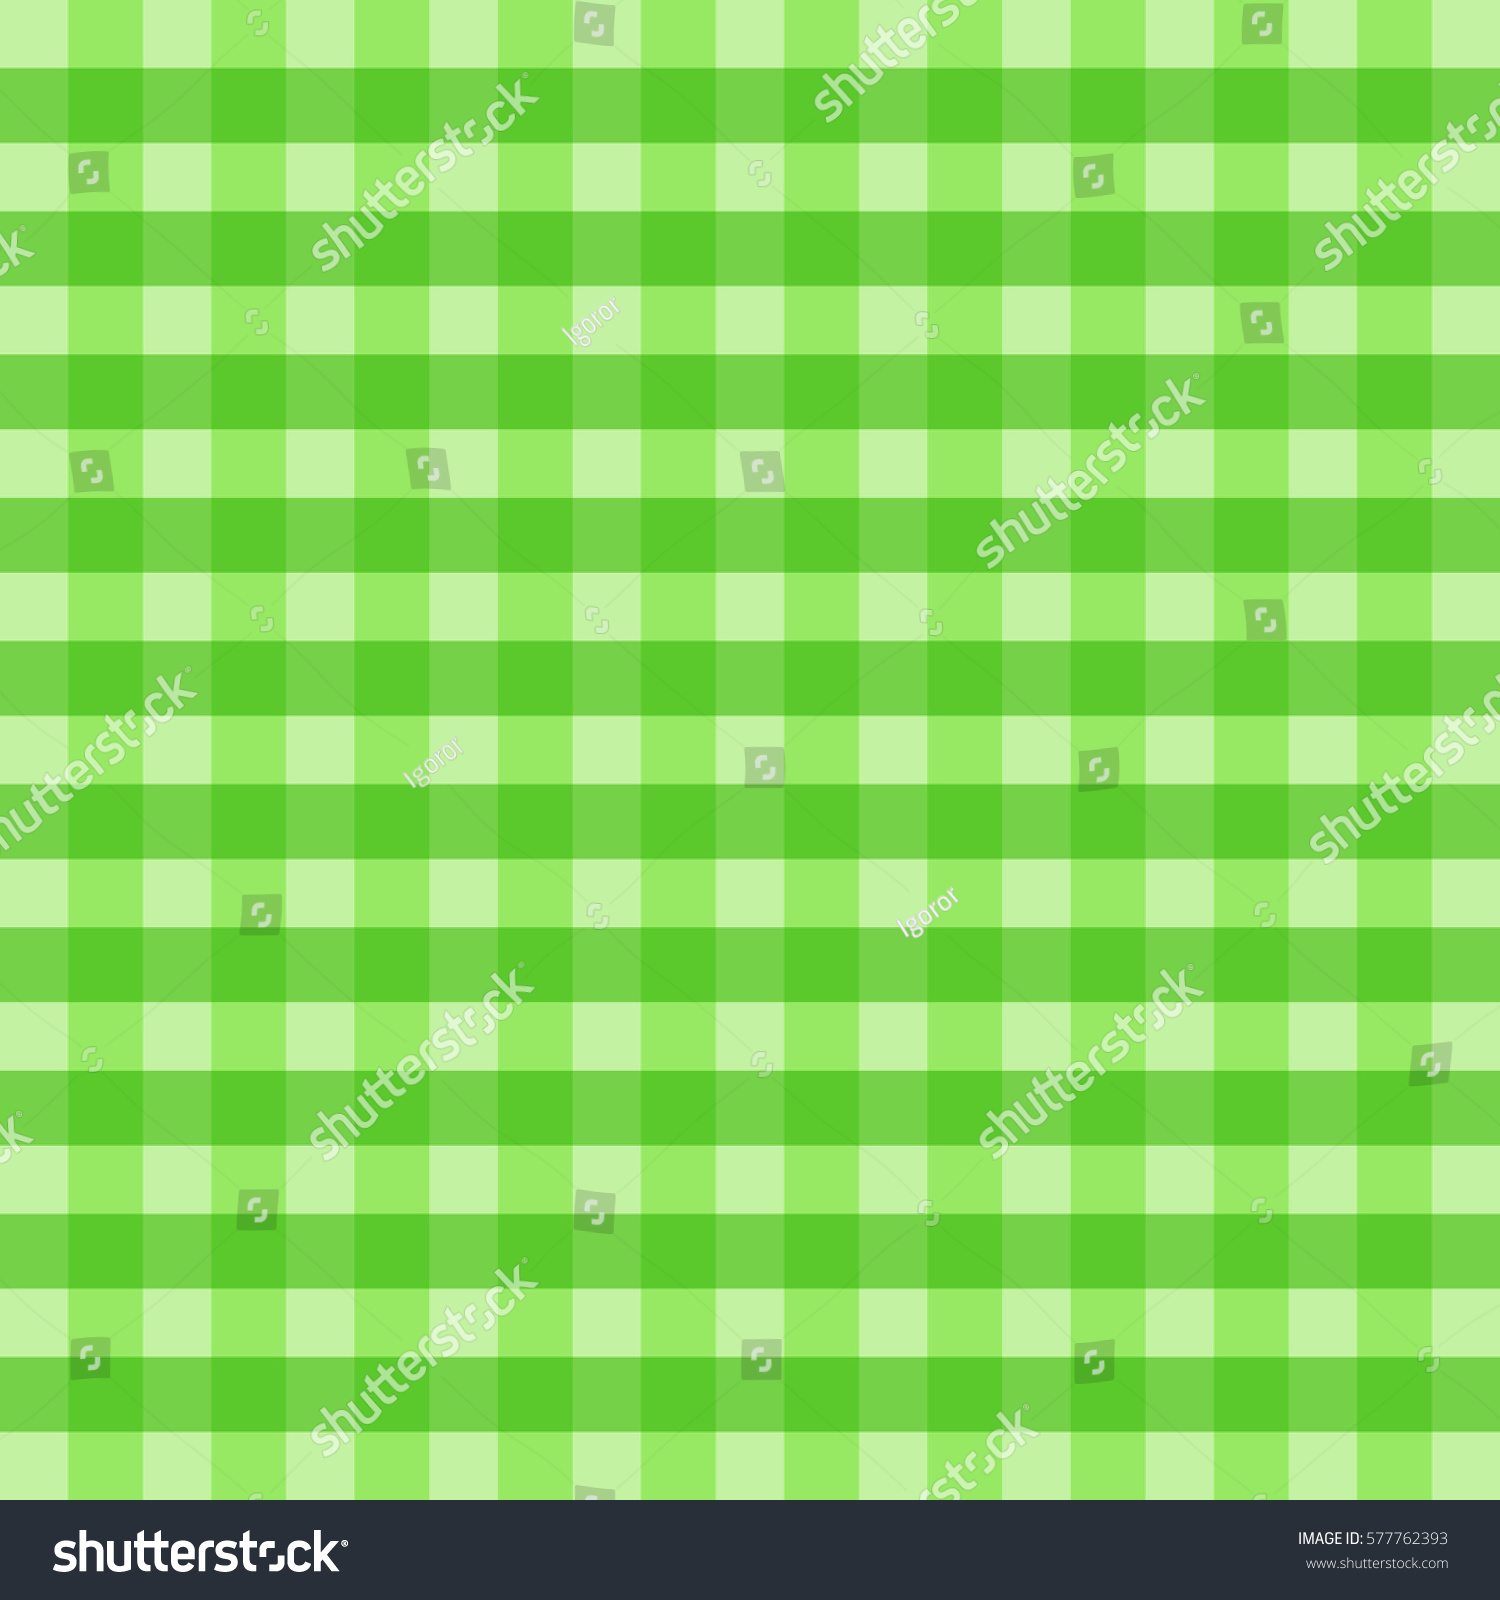 Green Checkered Picnic Tablecloth